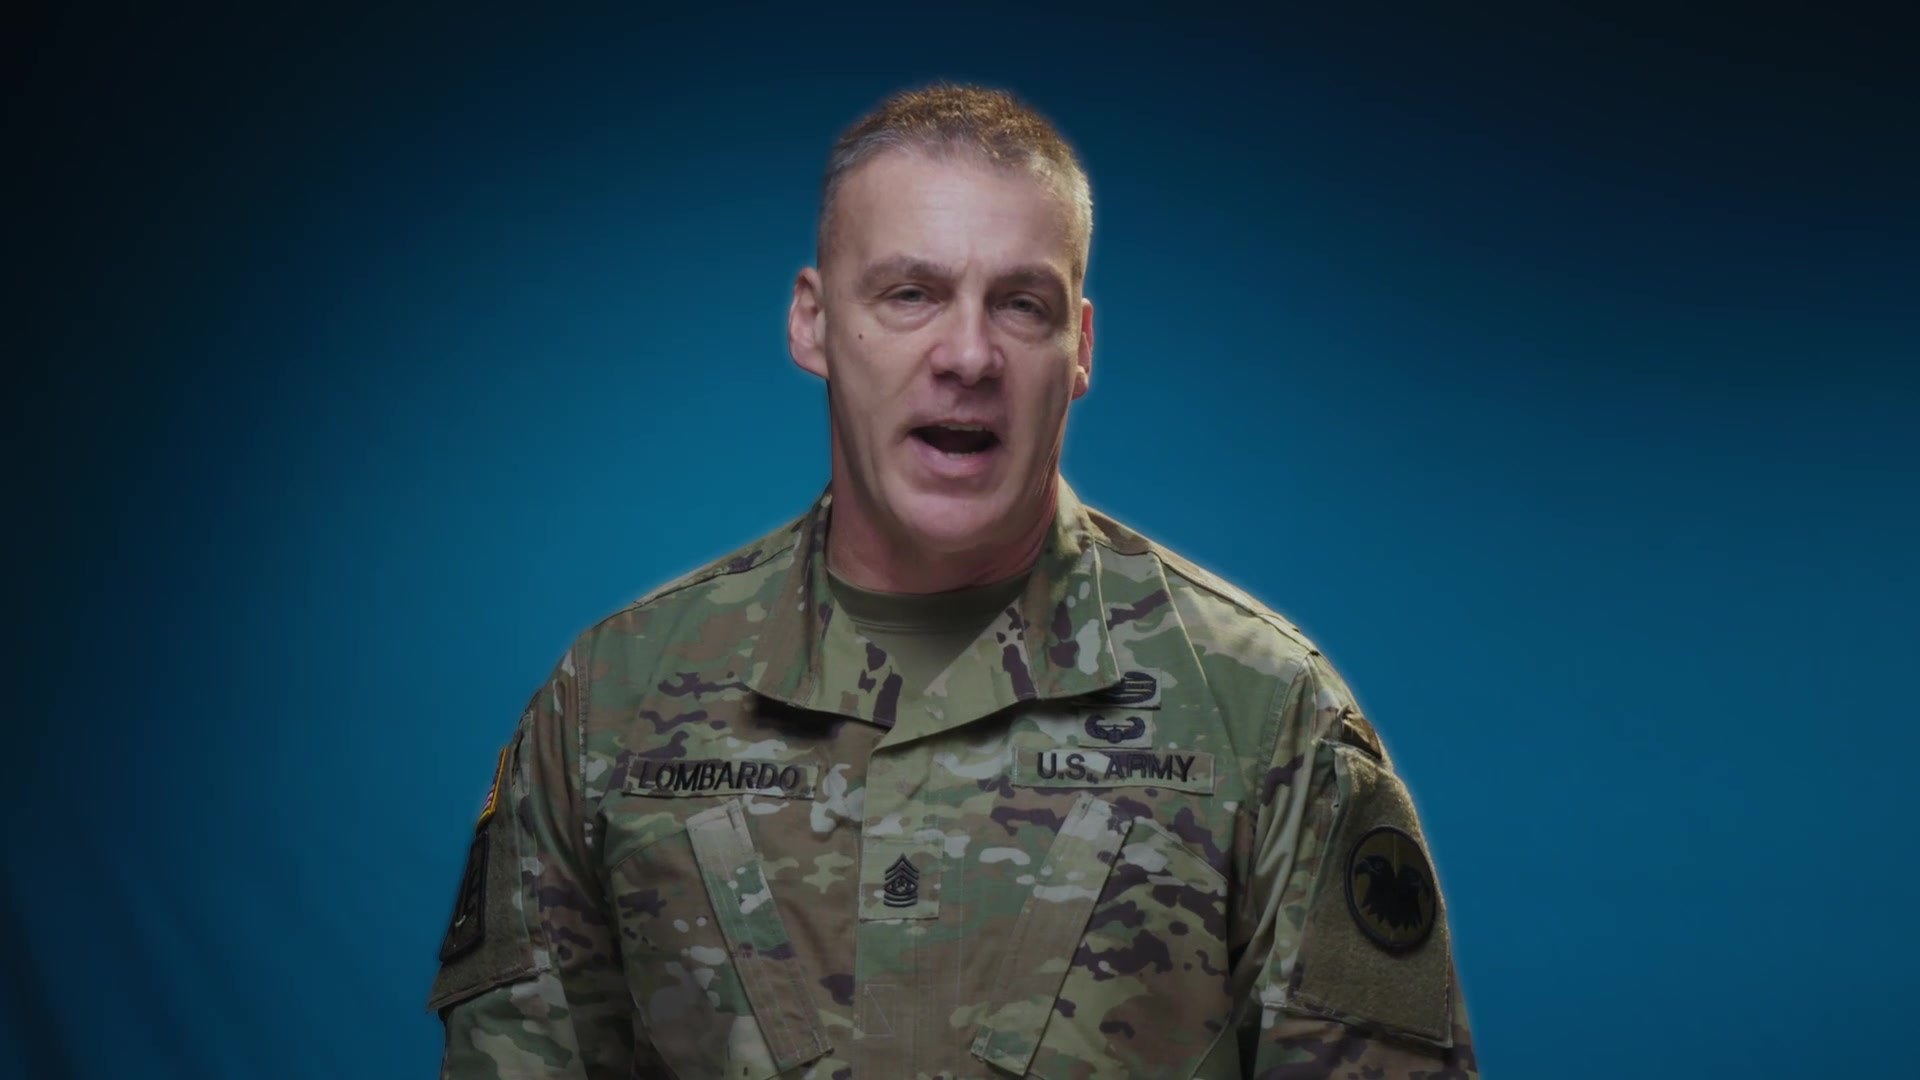 Cmd. Sgt. Maj. Andrew Lombardo, Army Reserve Command Sergeant Major, introduces a new video series he demonstrating Expert Soldier Badge skills. He challenges each member of the Army Reserve to know their tasks in order to become ready now and shape tomorrow. 